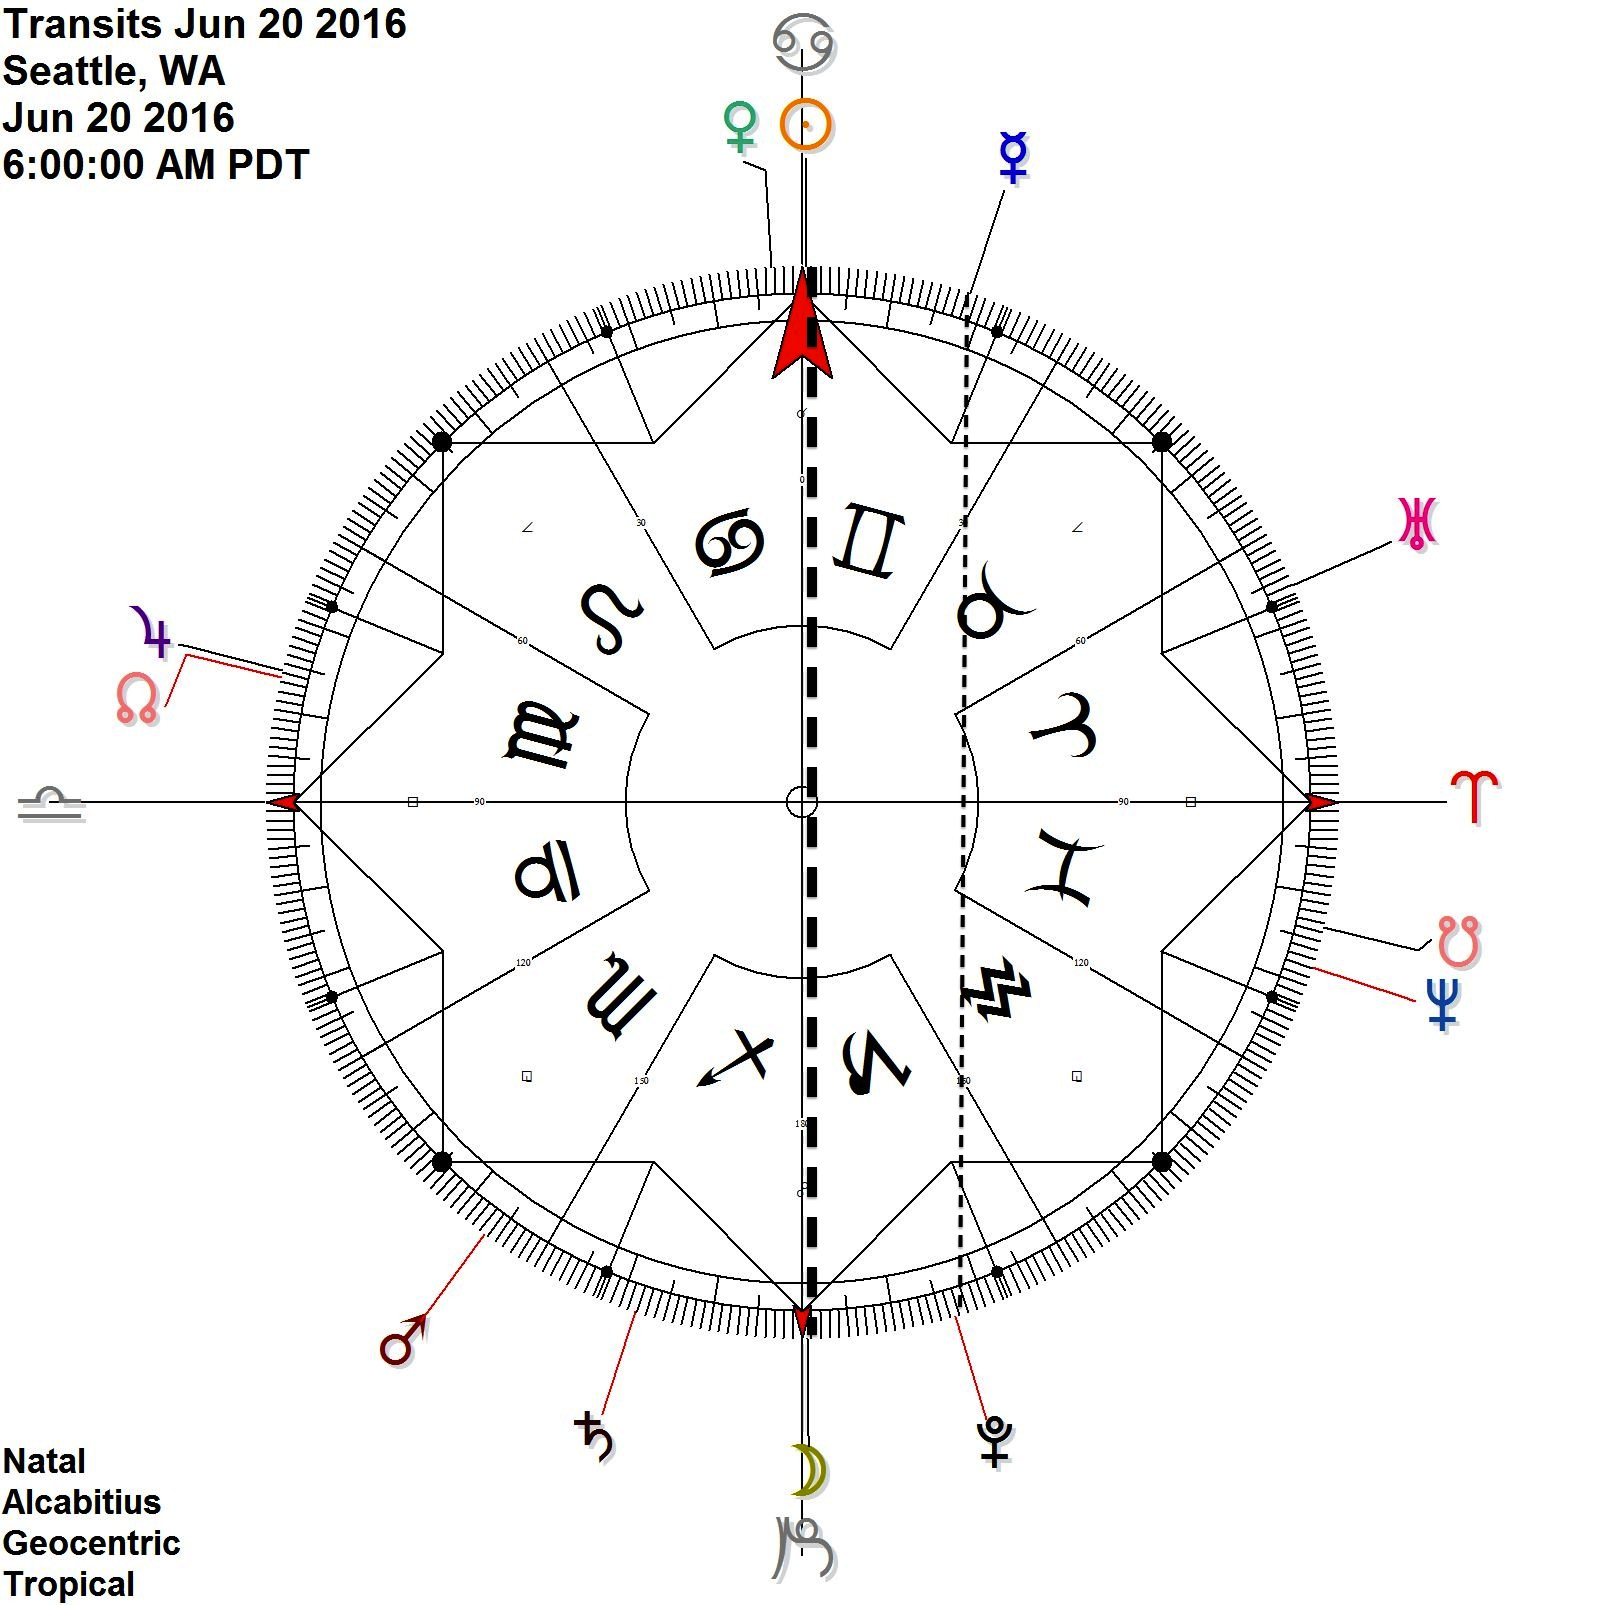 Sun Moon contra-antiscia: After the full moon at 29°33' Sagittarius and just before the solstice